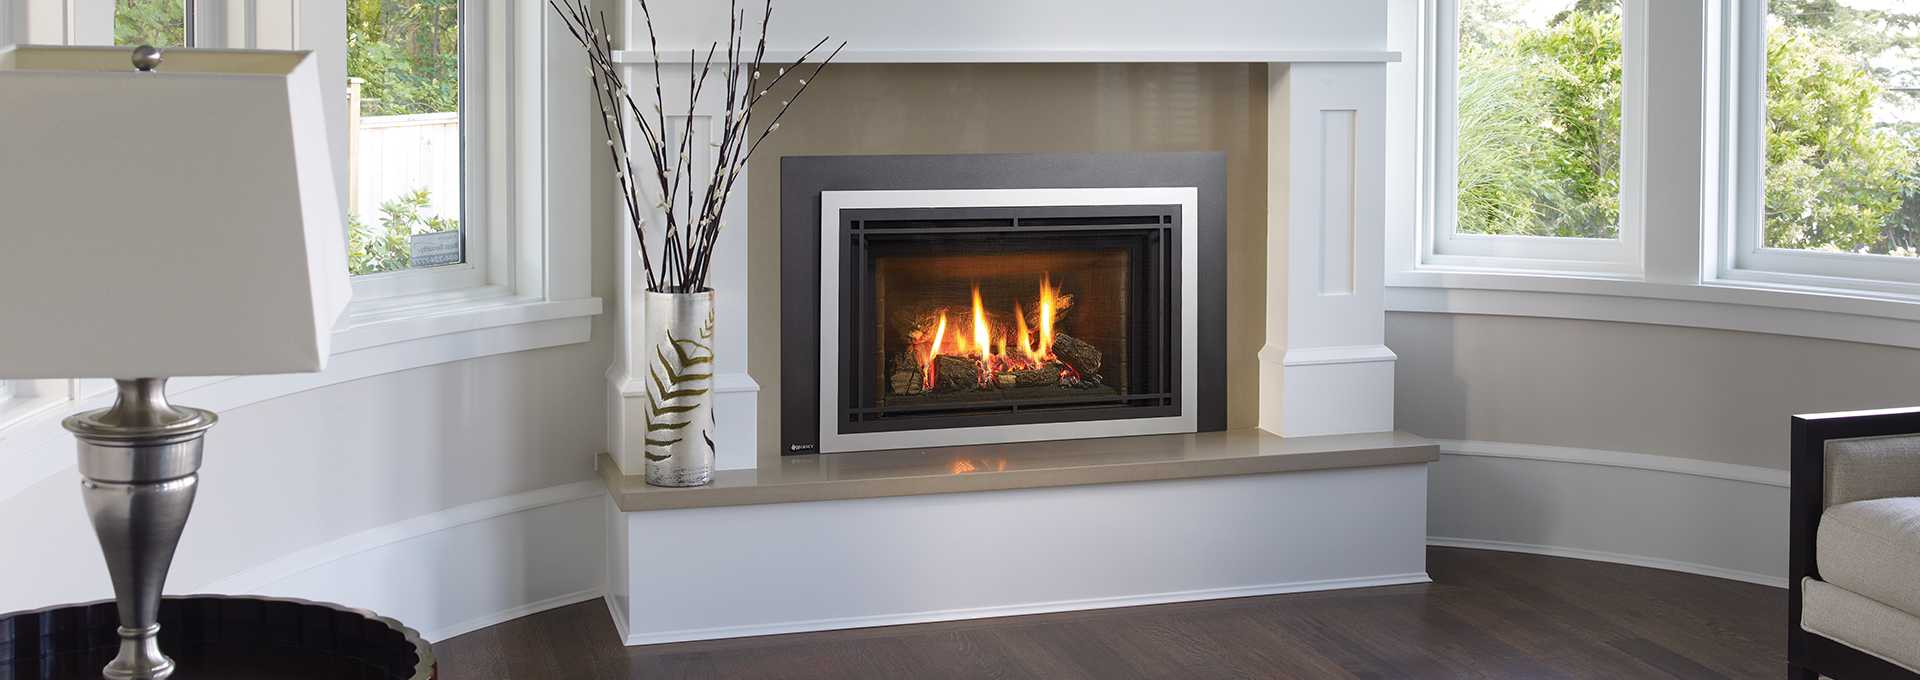 Lovely Energy Efficient Gas Fireplace Inserts Part - 14: Shown With Vignette Faceplate In Platinum, Vignette Craftsman Inlay In  Black And Brown Brick Panels